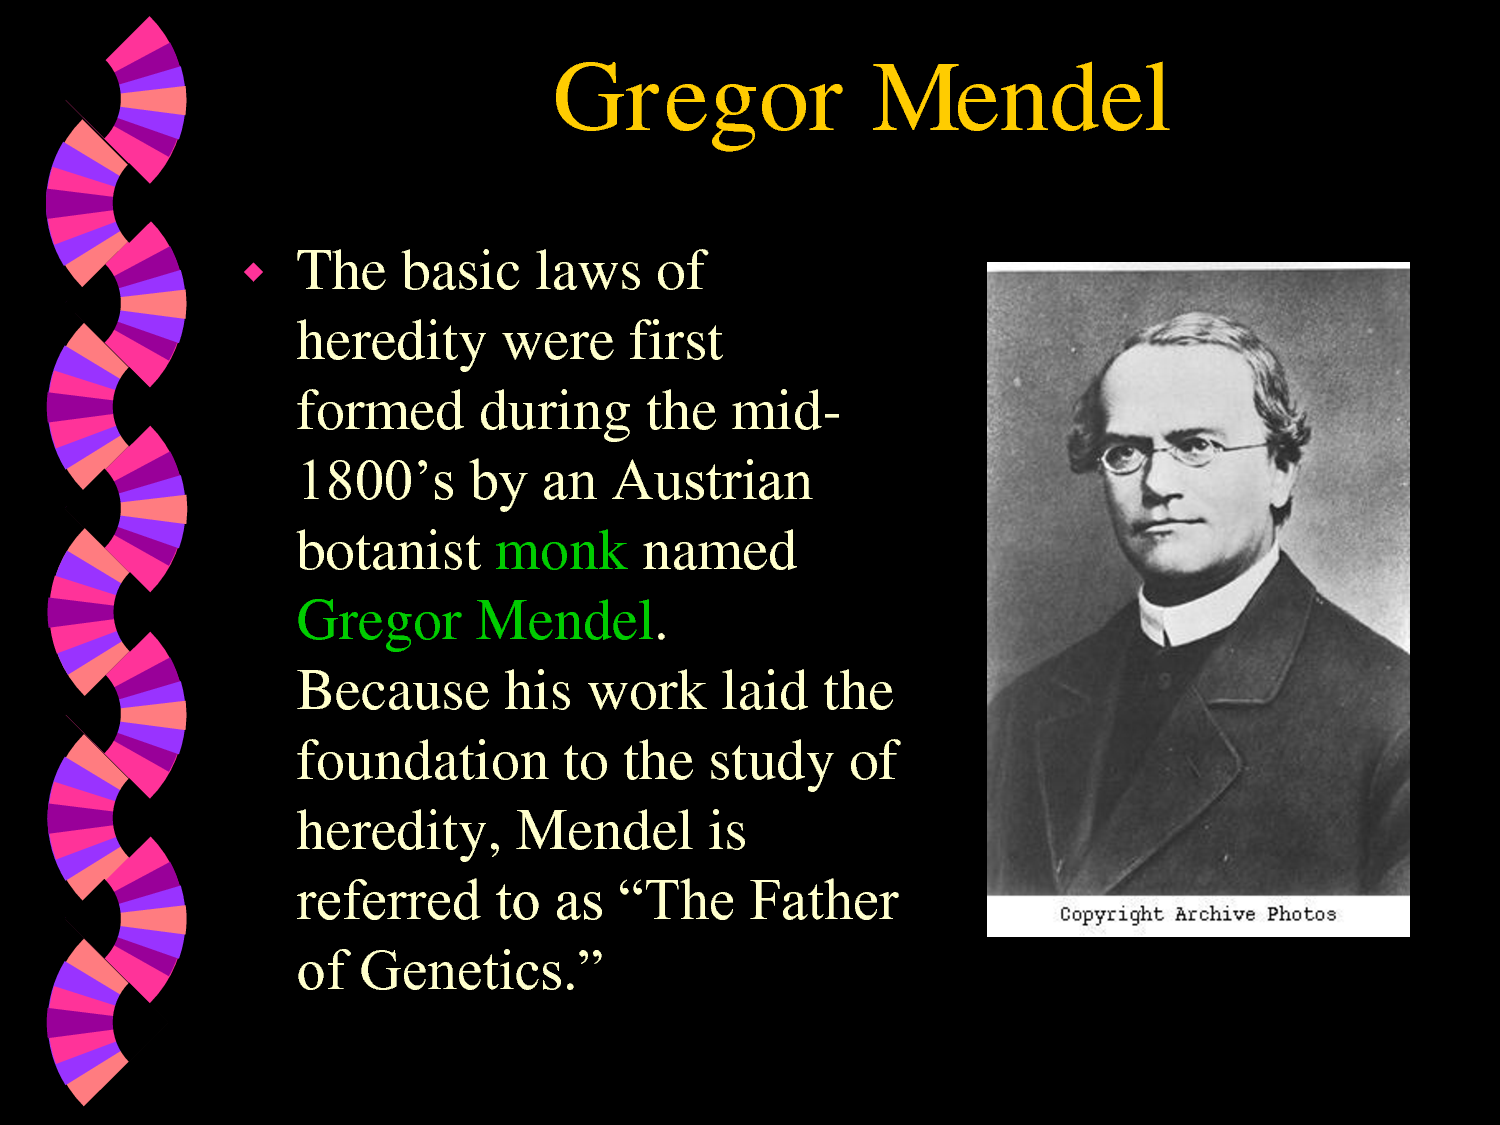 gregor mendel's experiments and the inheritance Module 2 | blueprint of life focus 2: gregor mendel's experiments helped advance our knowledge of the inheritance of characteristics lesson 1 | mendel's experiments.